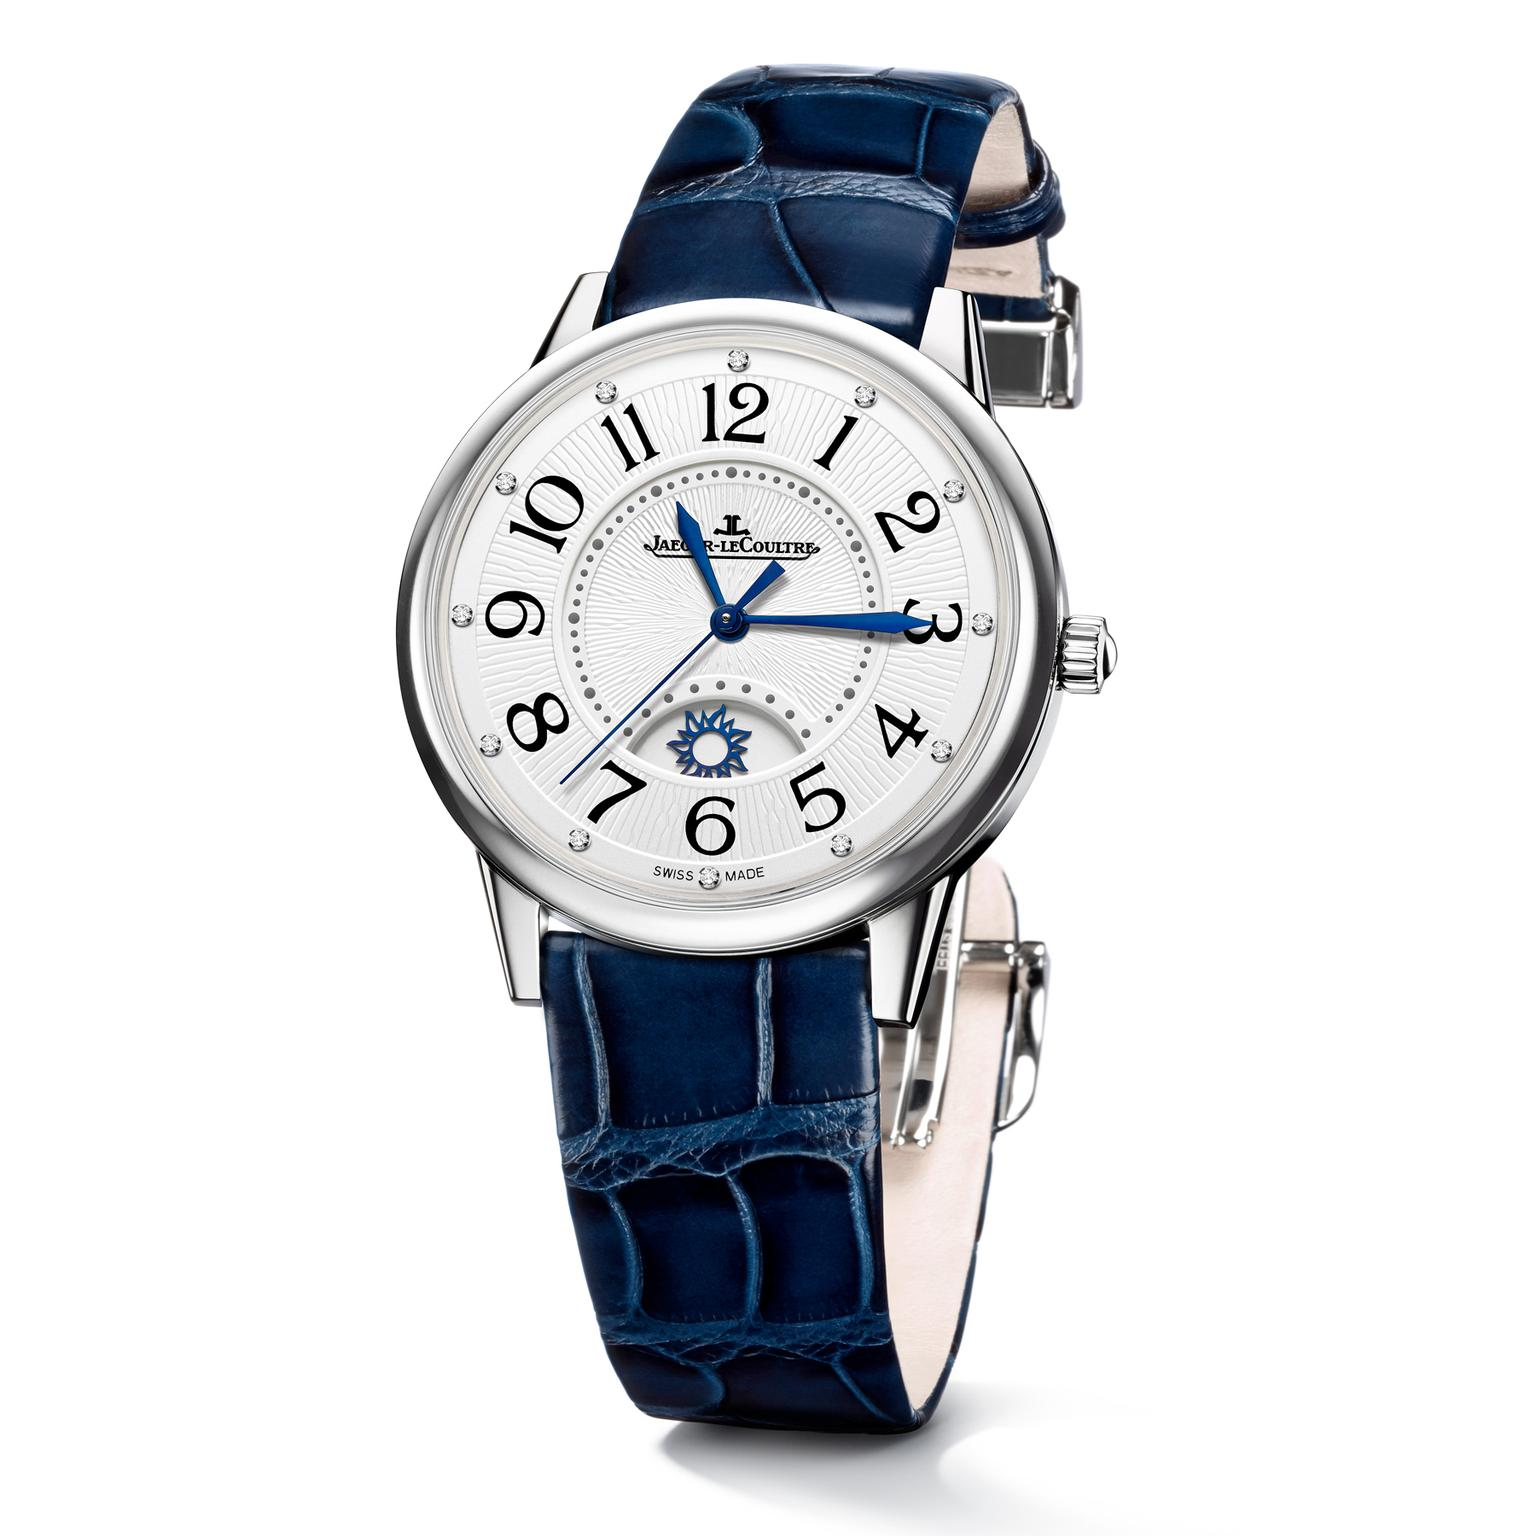 Jaeger-LeCoultre Rendez-Vous Night & Day watch